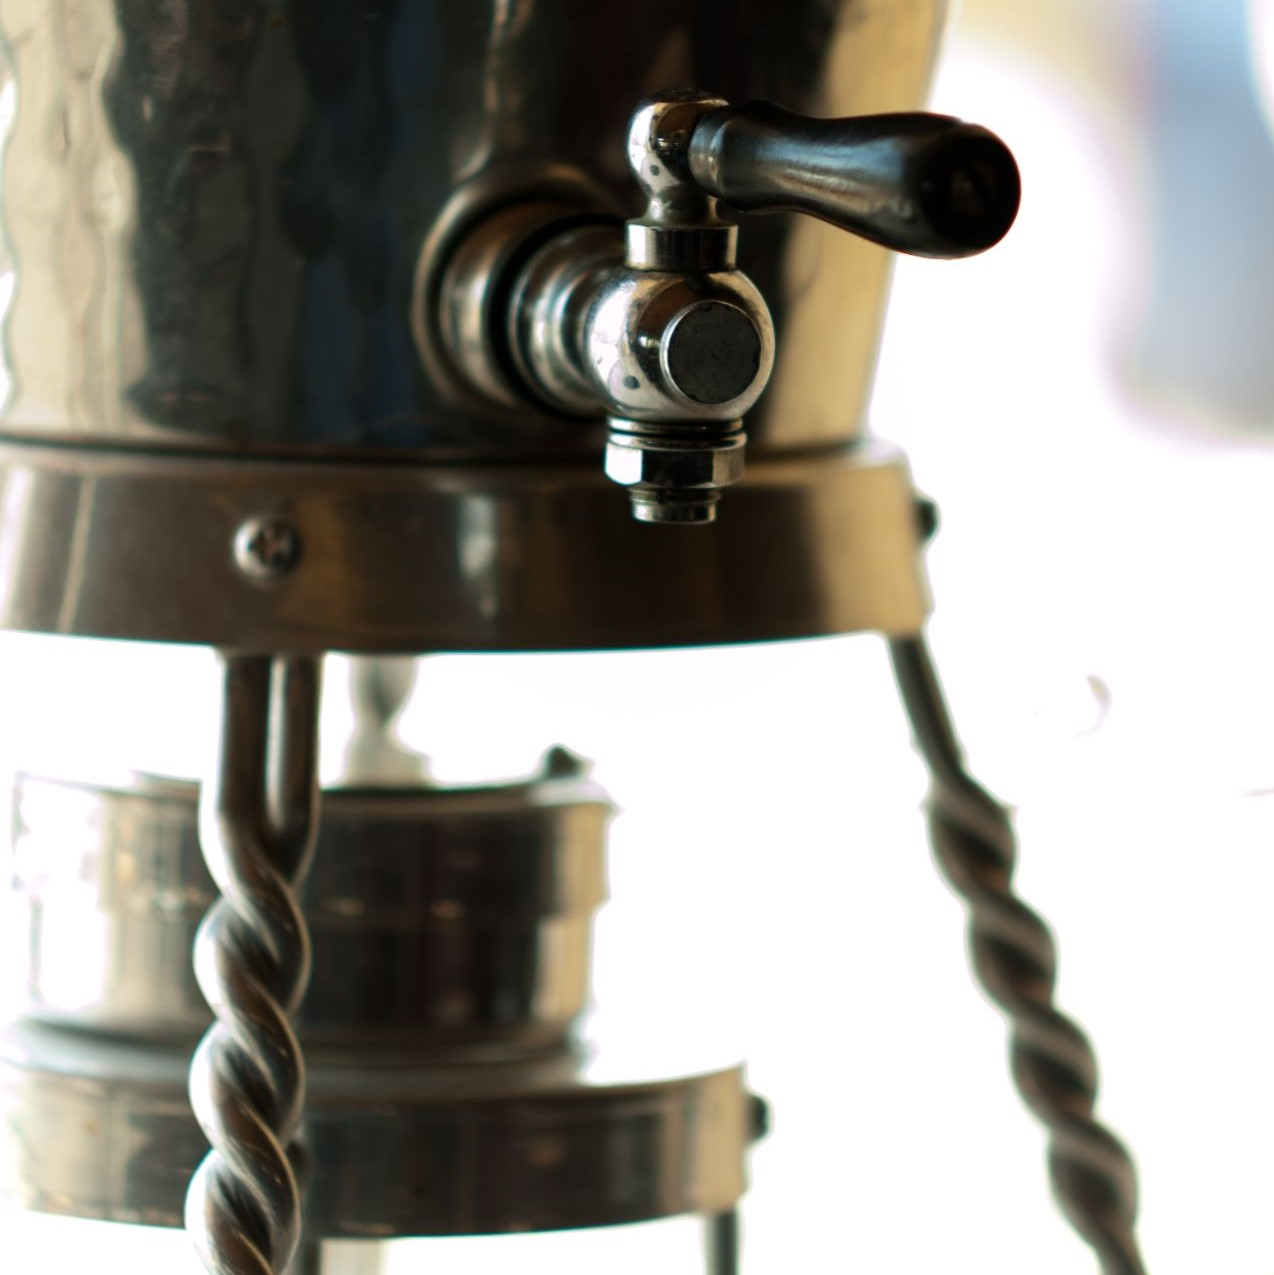 Close-up of an old fashioned metal coffee rig